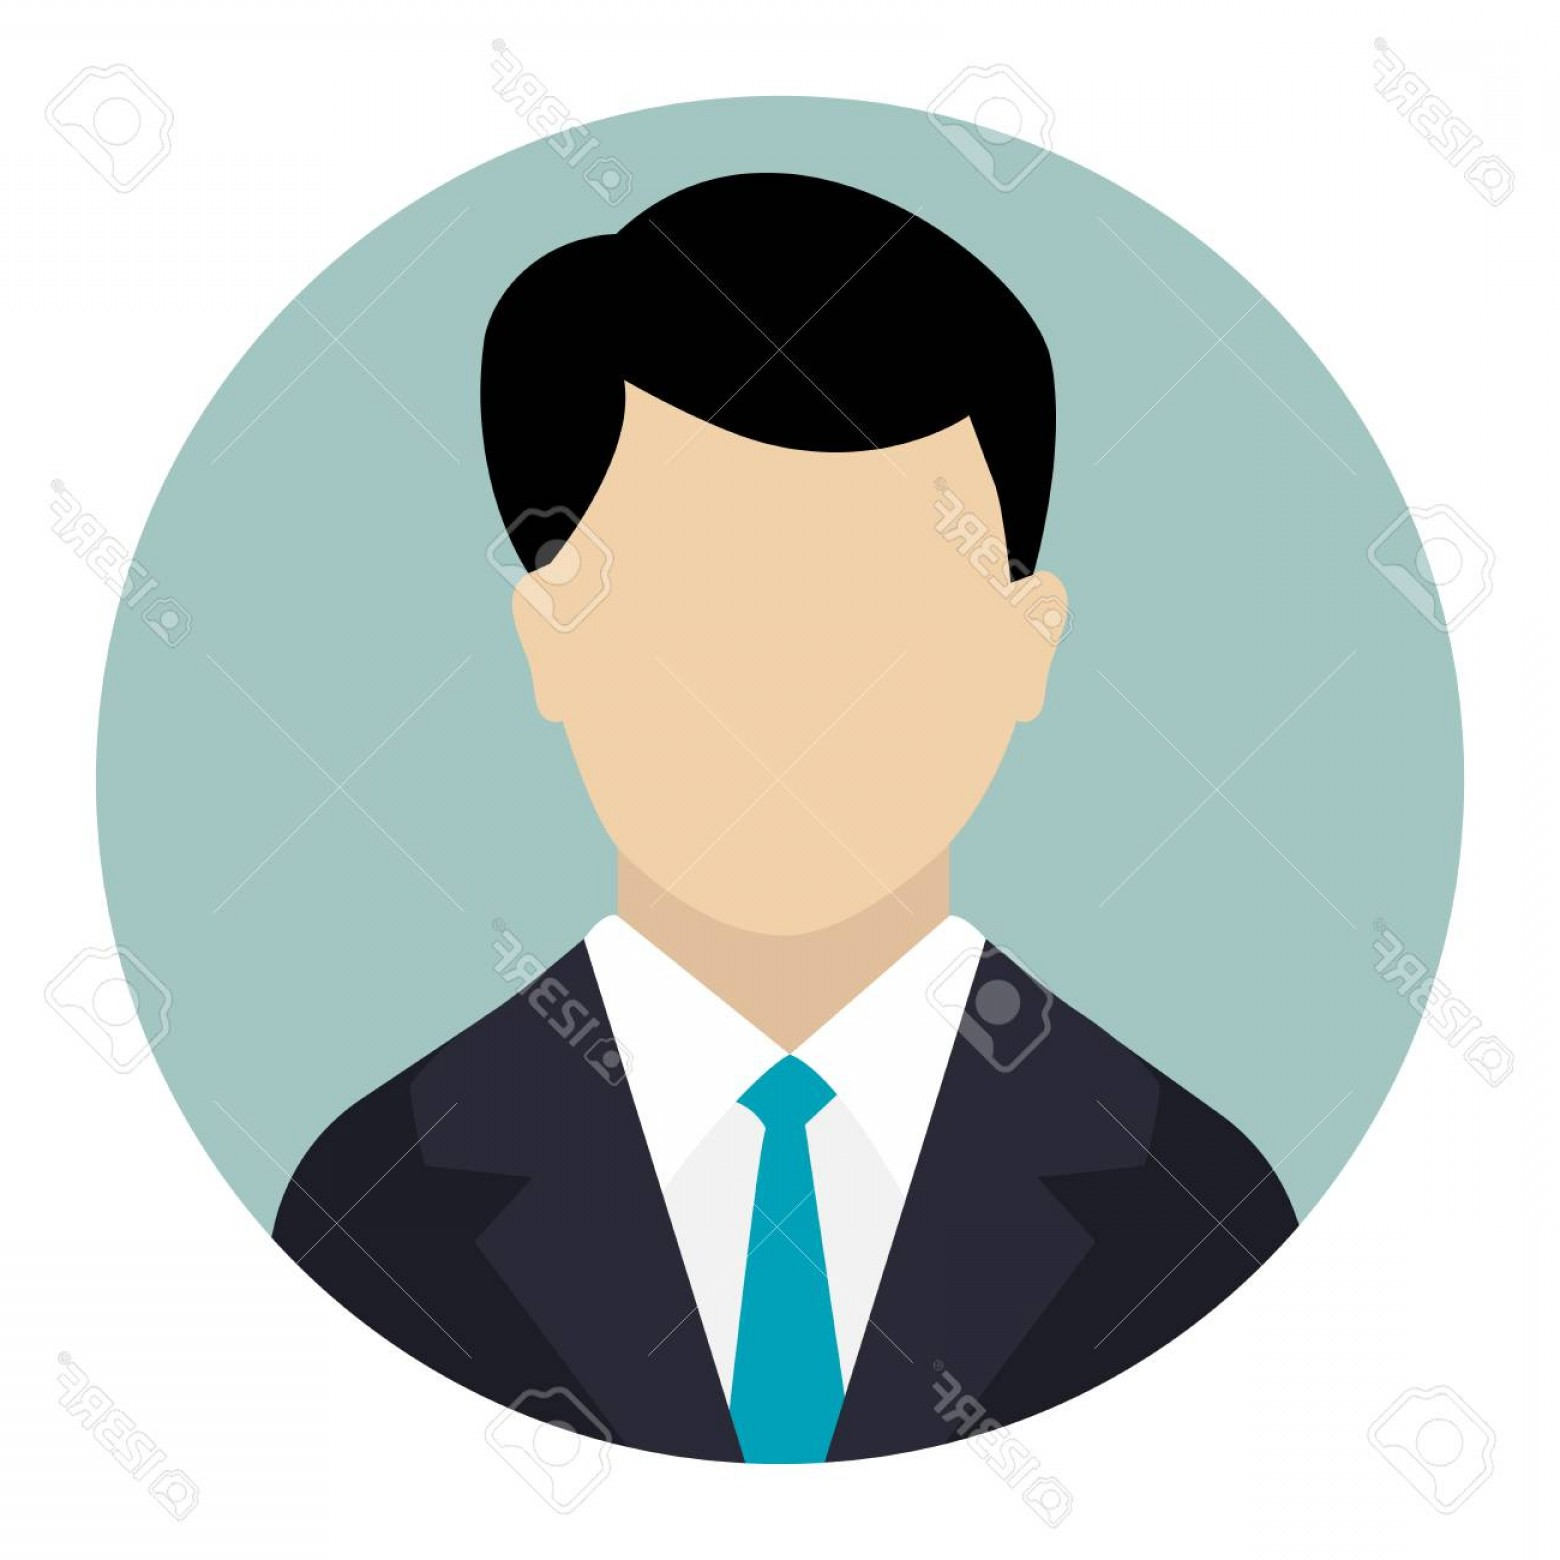 User Icon Vector Free: Photostock Vector User Icon Male Avatar In Business Suit Businessman Flat Icon Man In Business Suit Avatar Of Business